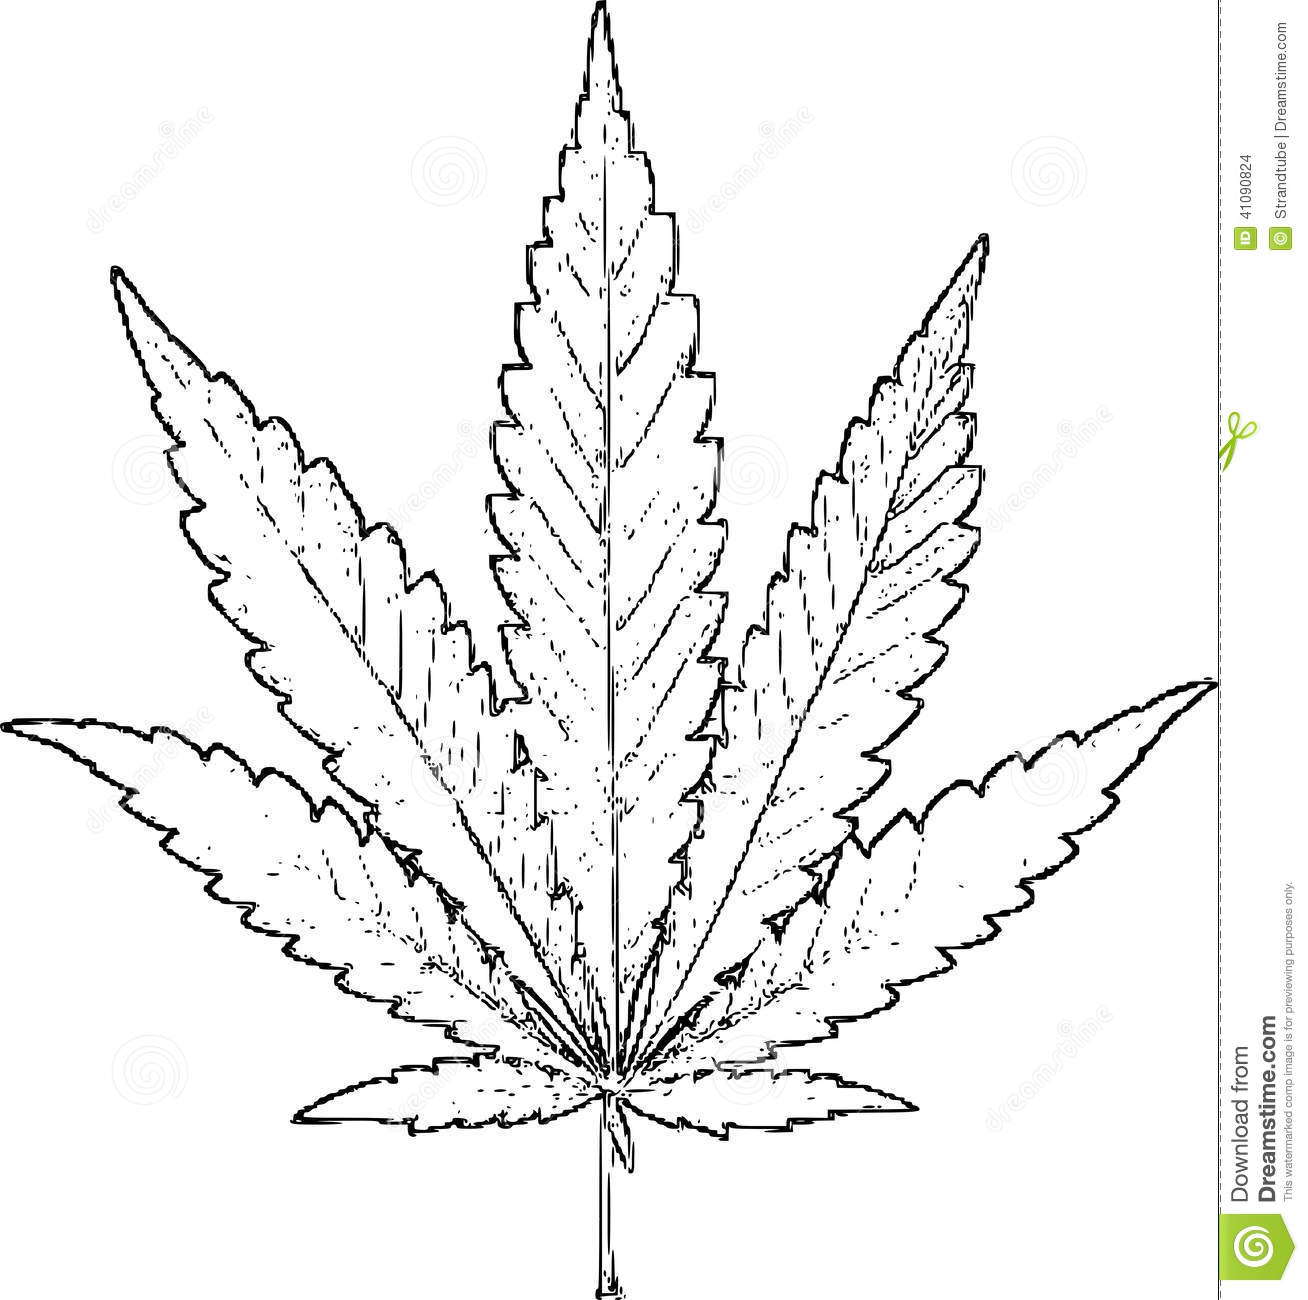 how to draw the weed leaf weed leaf drawing at getdrawings free download weed draw to leaf the how